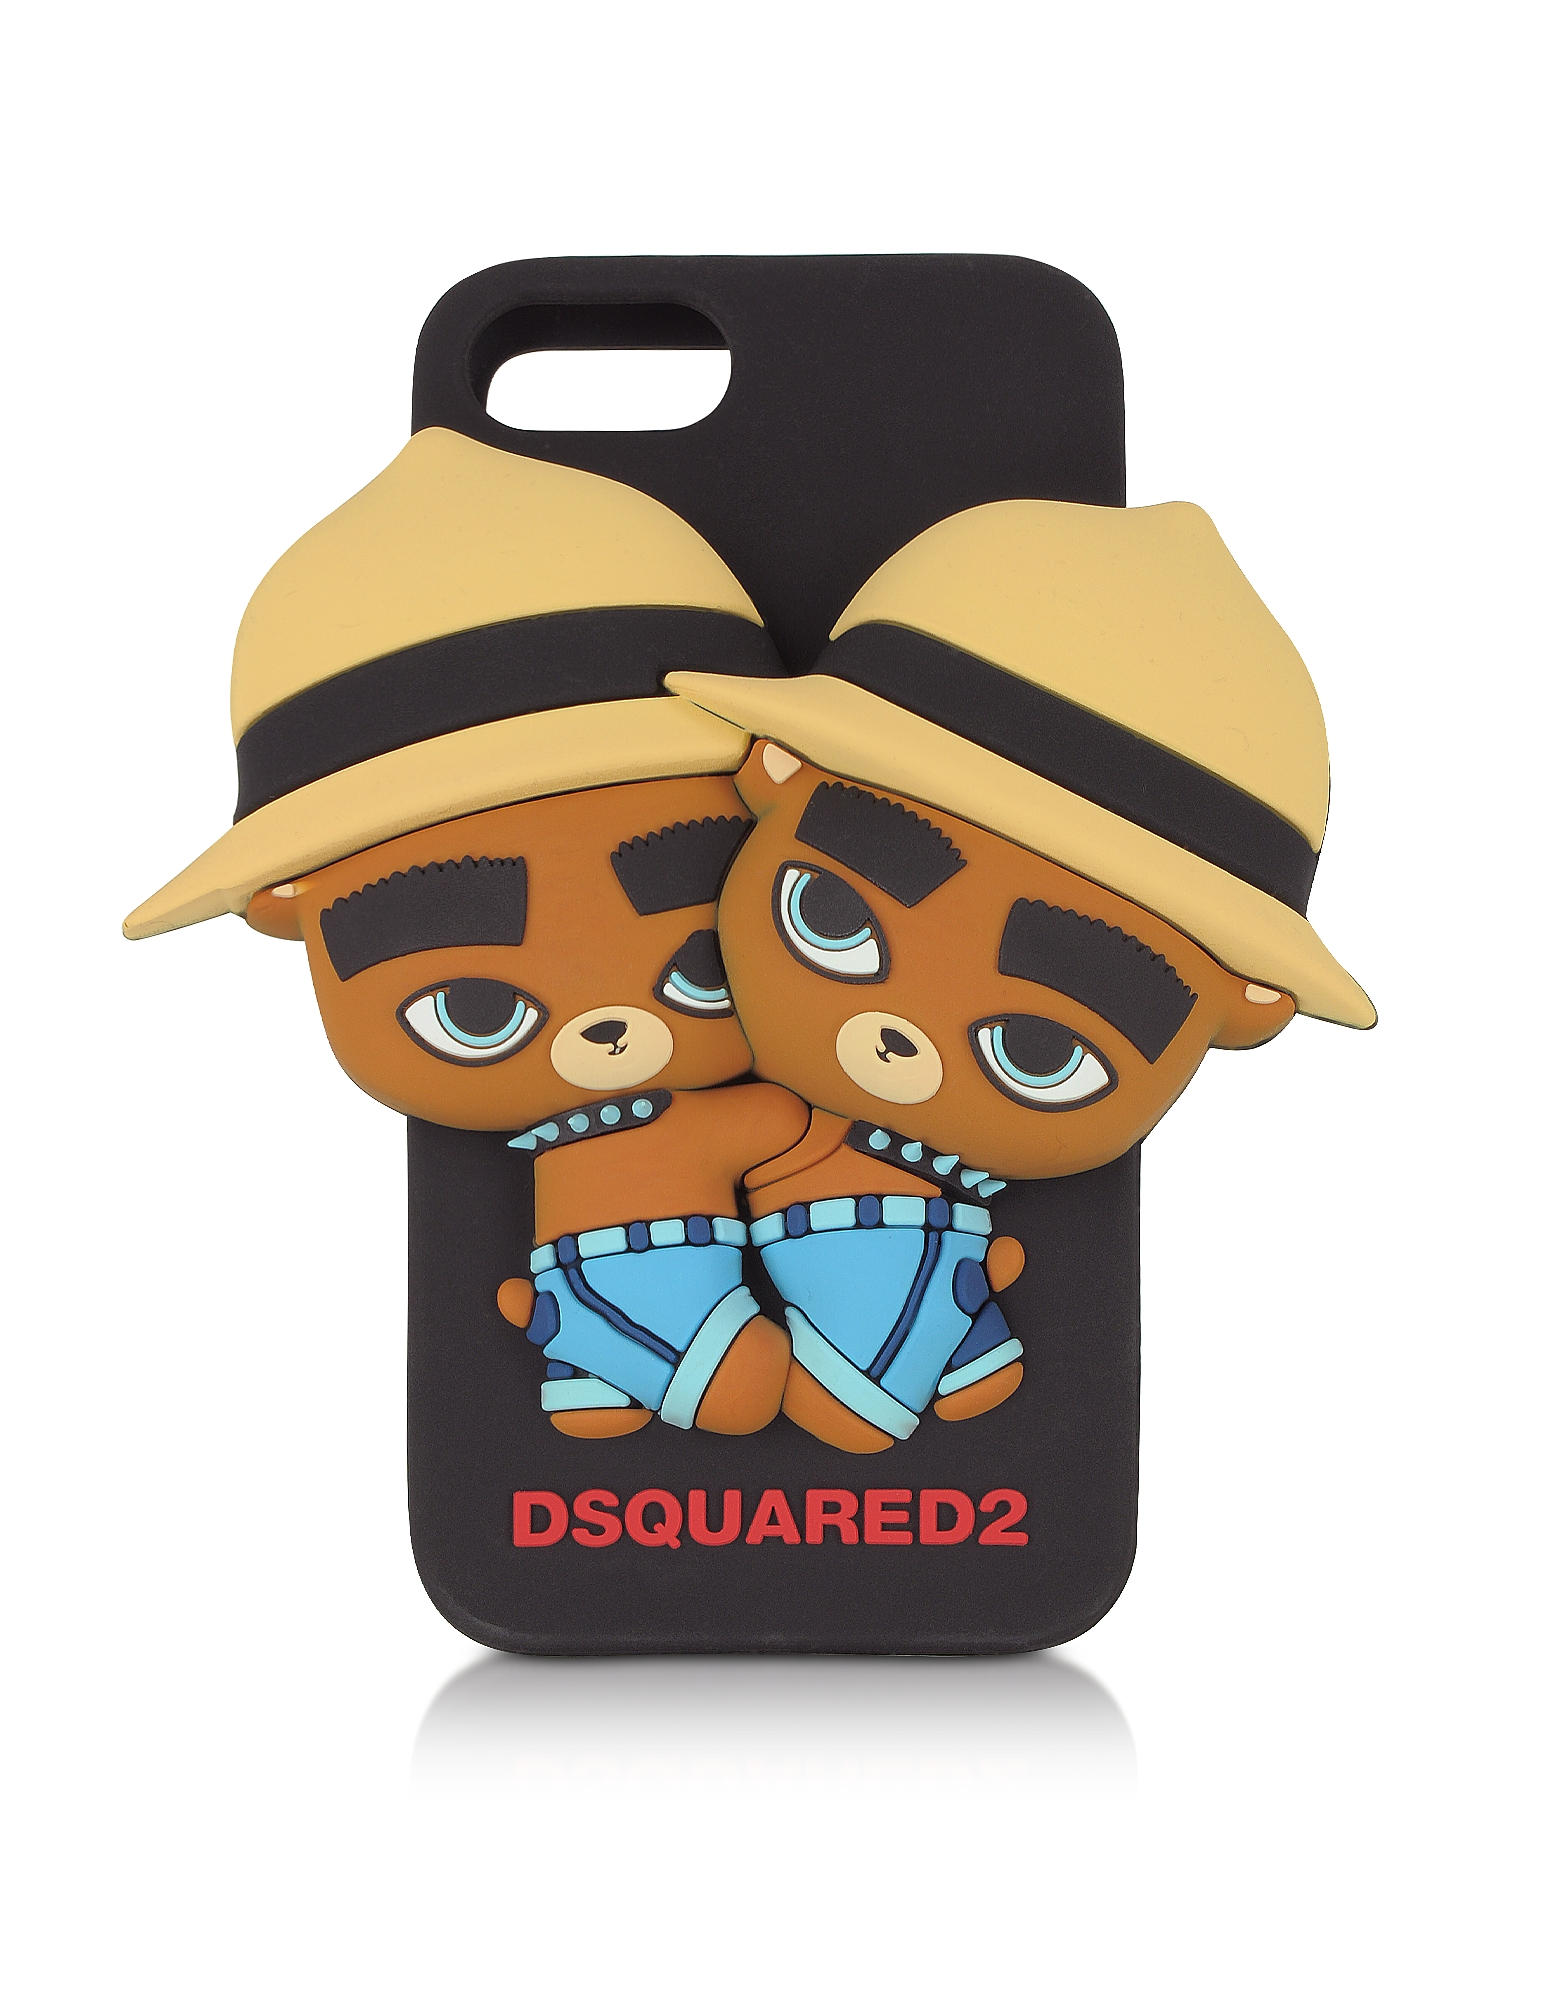 DSquared2 Handbags, Black Silicone iPhone 7 Cover